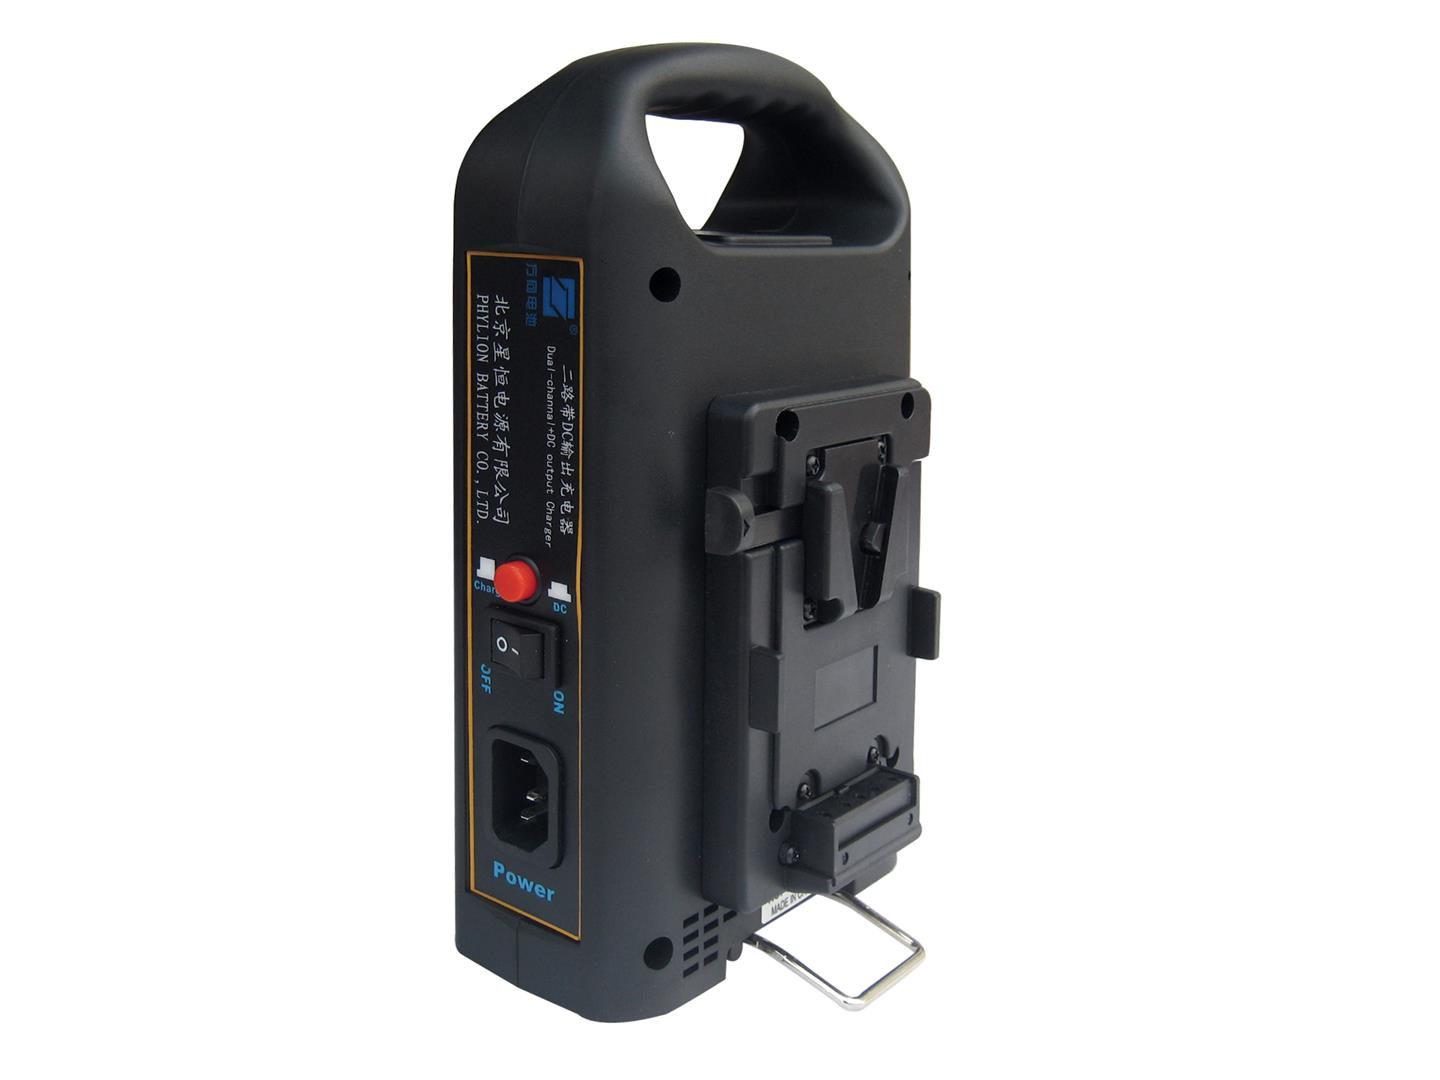 Pro Video Camera Li-ion Battery Charger